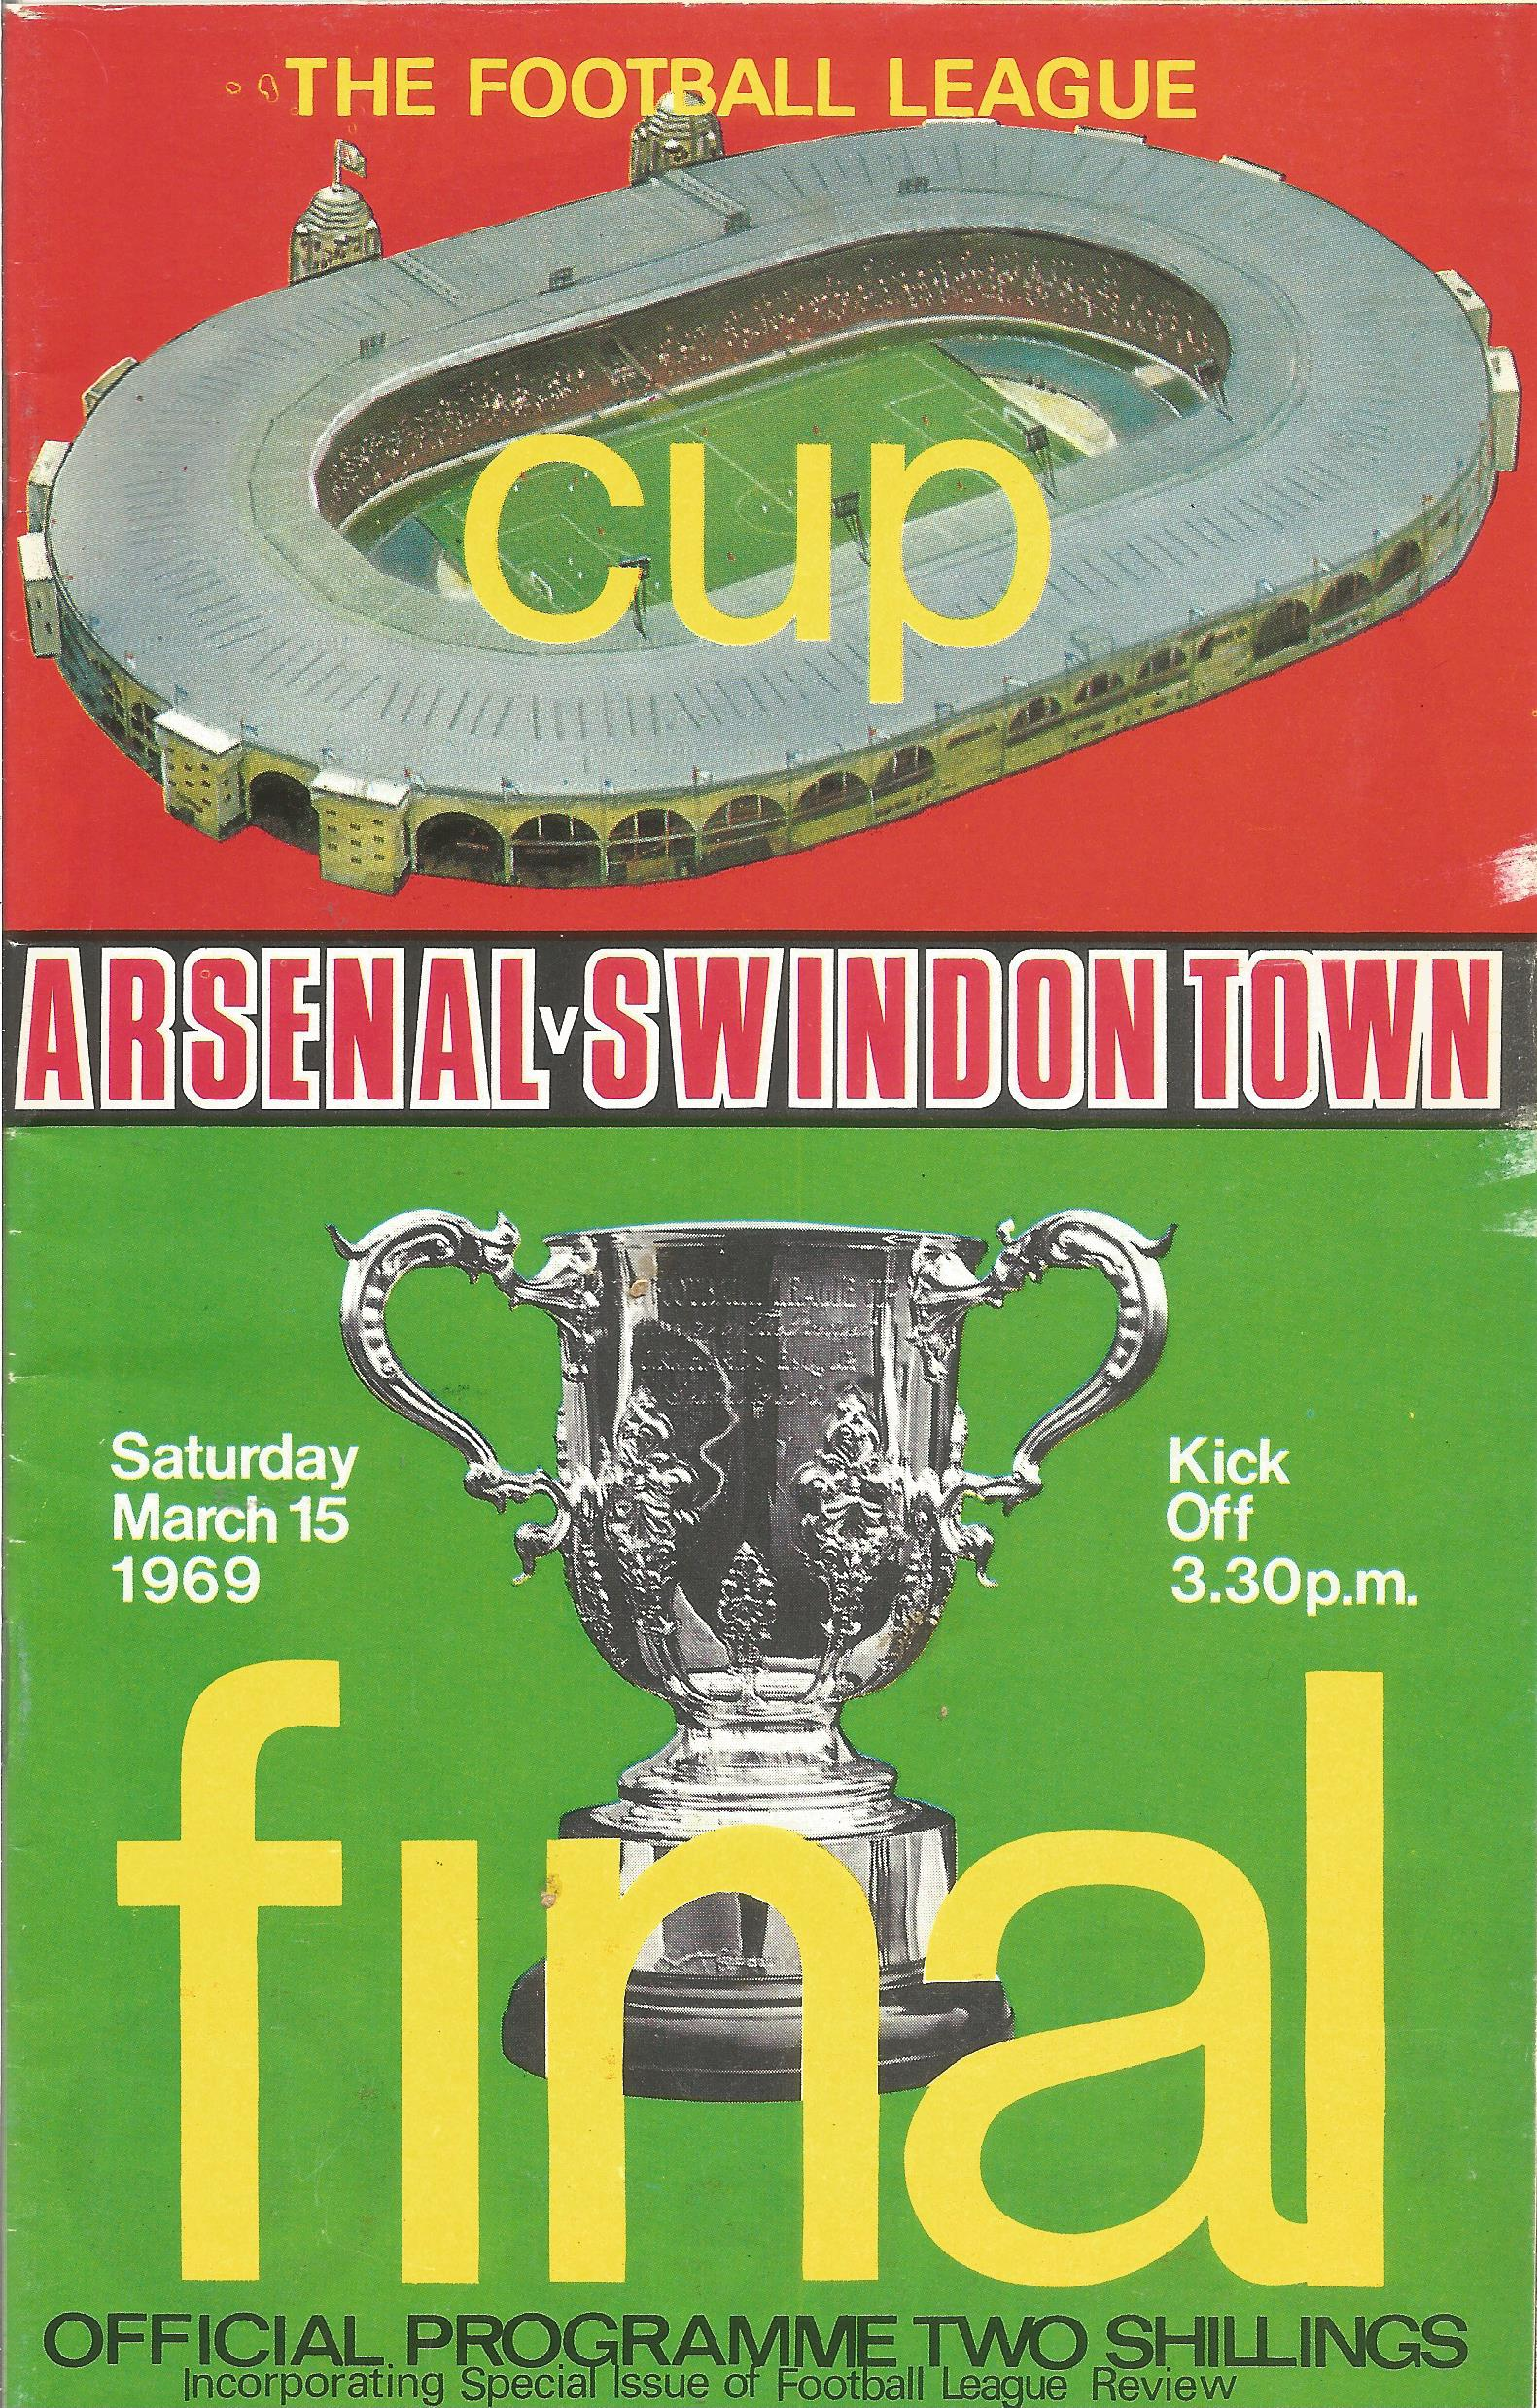 Arsenal. A Collection of 4 matchday programmes. From 1950, 1969, 1969 and 1983. some showing signs - Image 5 of 5